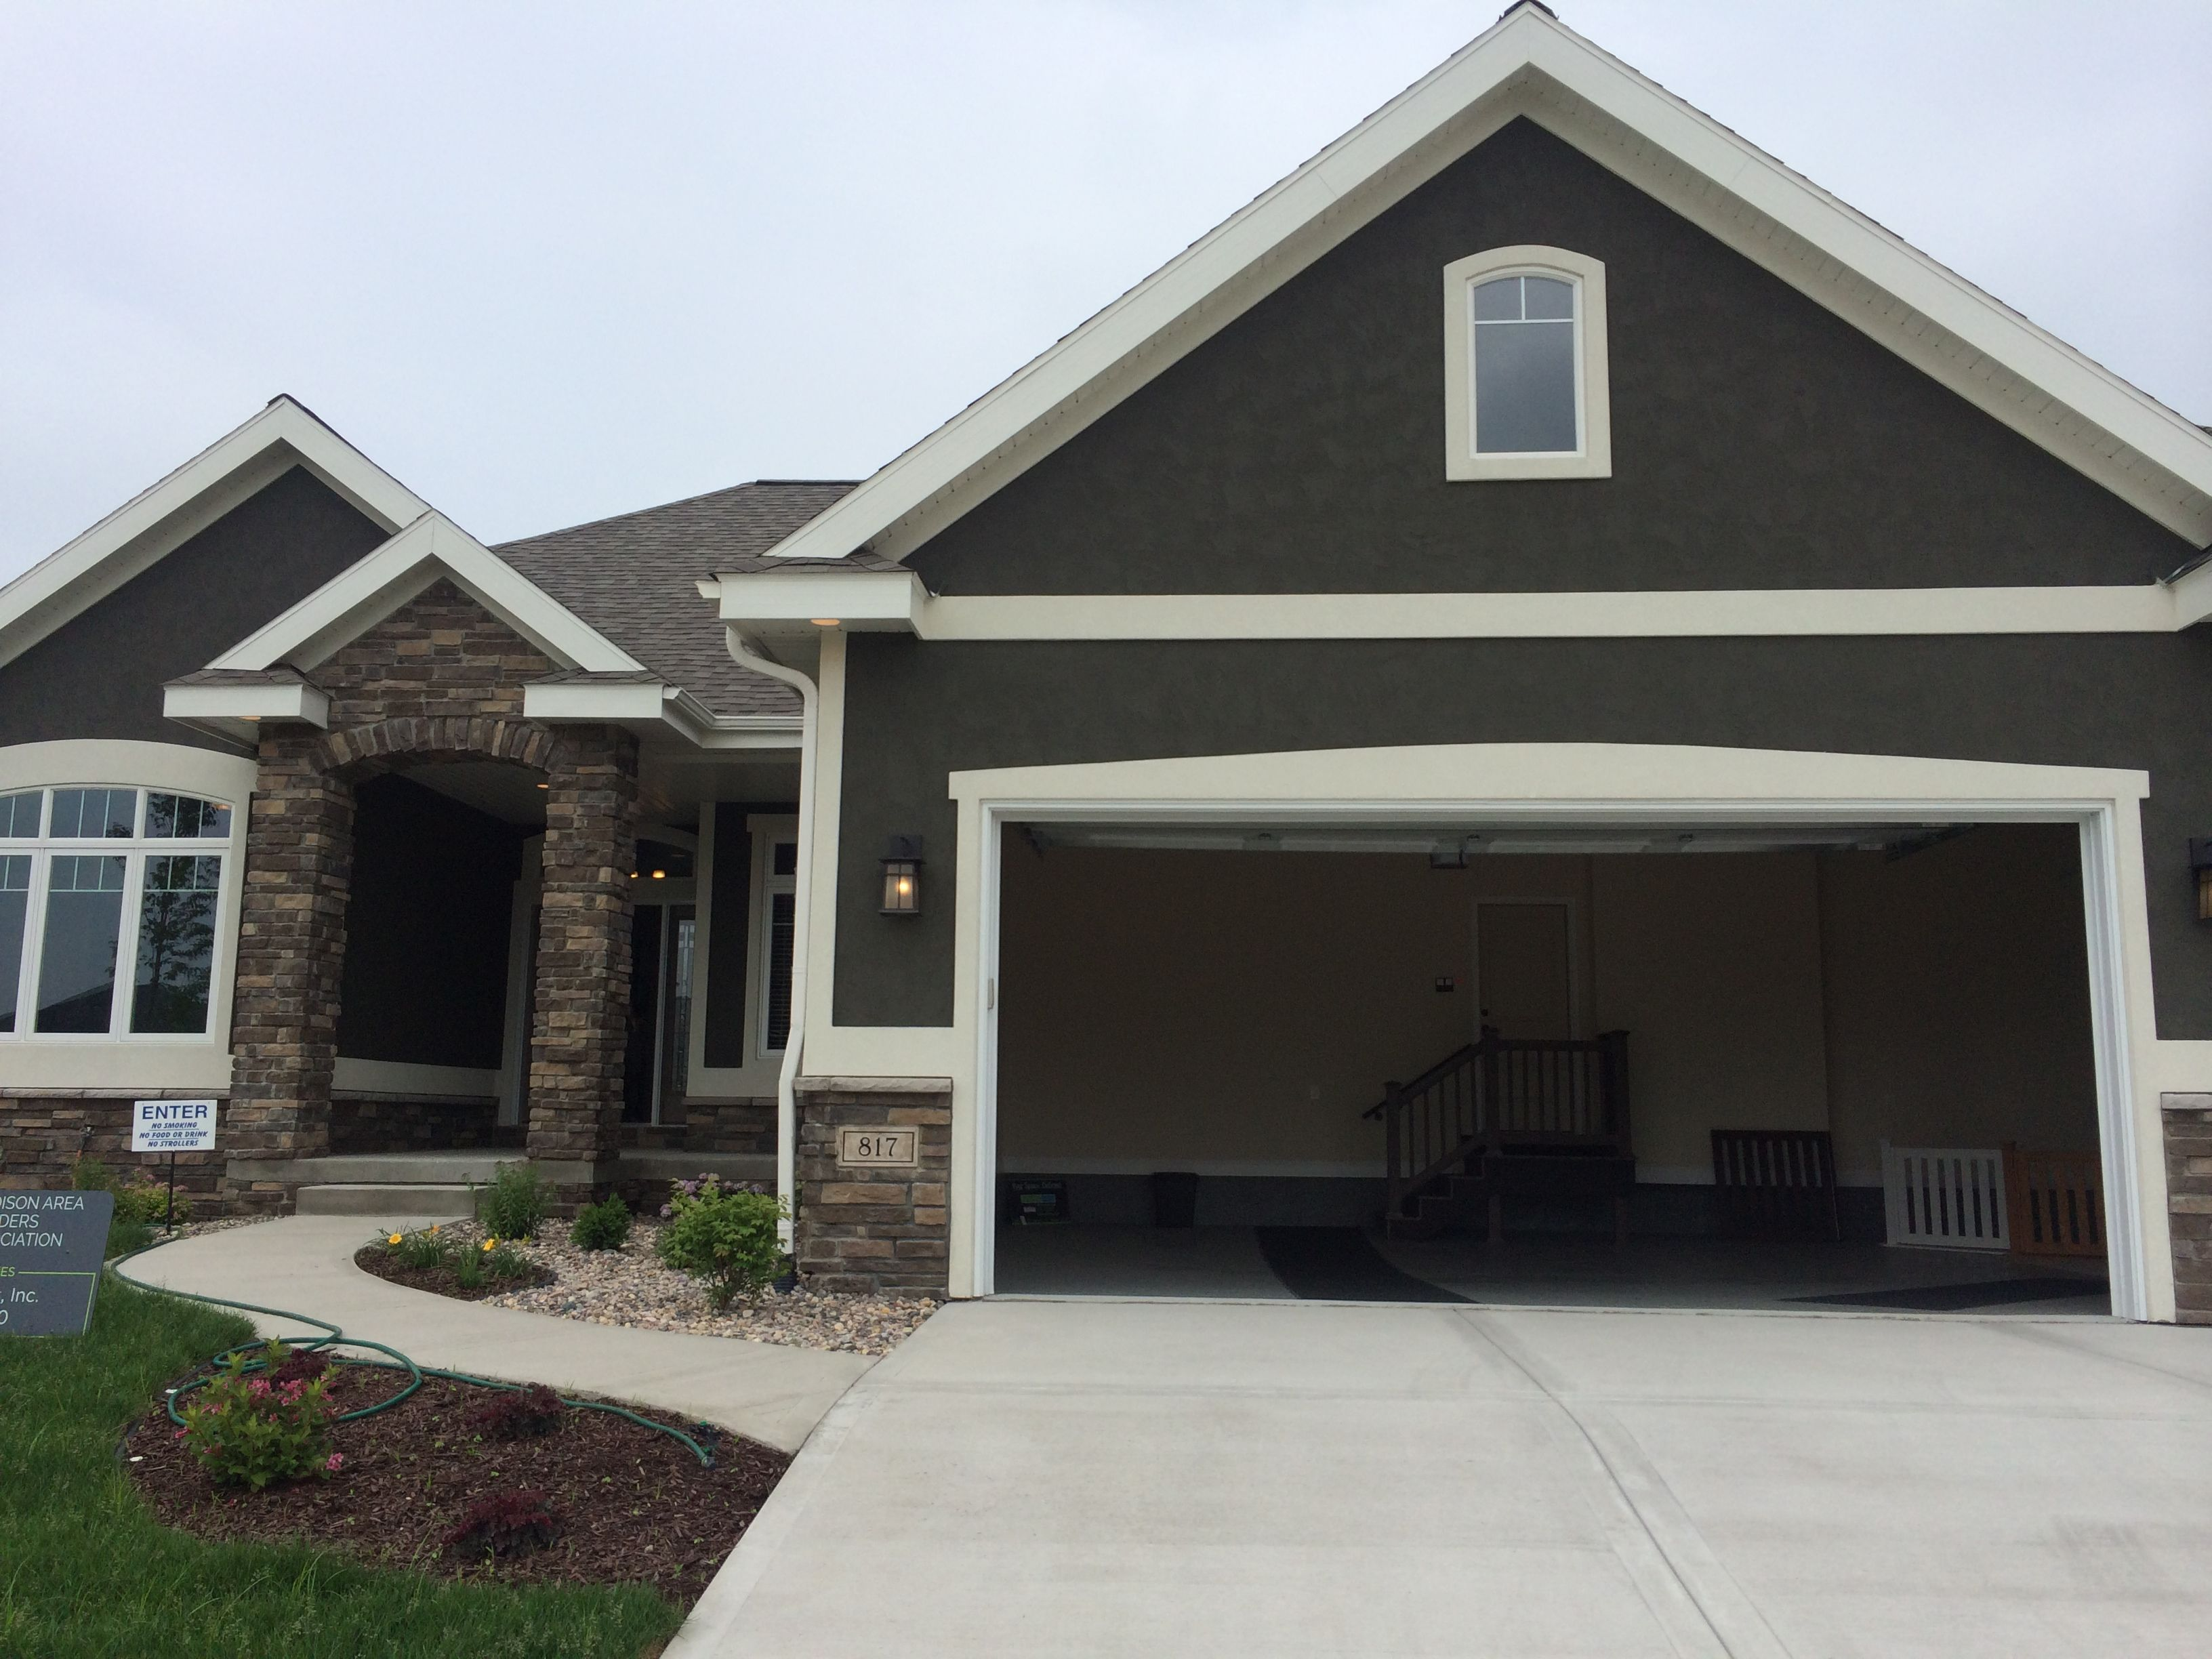 Dark grey stucco exterior white trim nice stone entrance - Painting a stucco house exterior ...